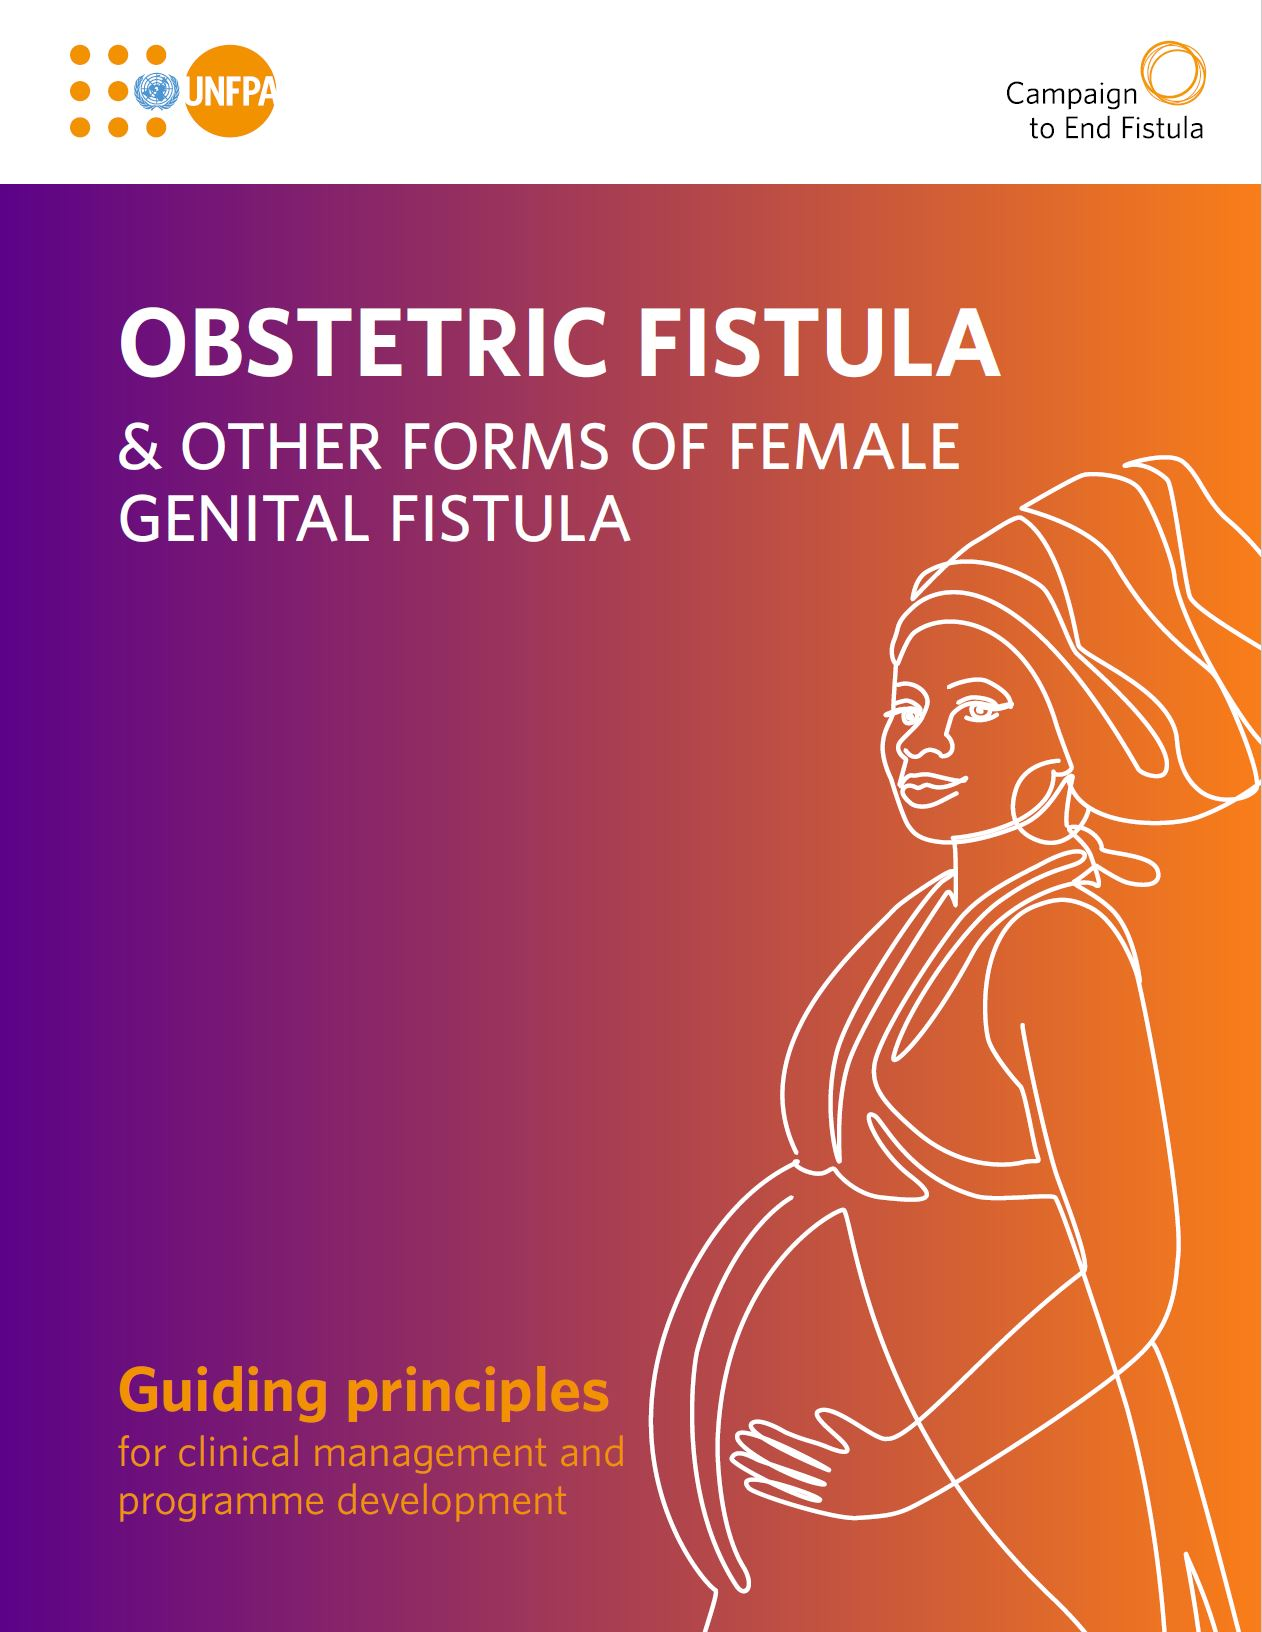 Cover of the UNFPA publication title: Obstetric Fistula & other forms of female genital fistula